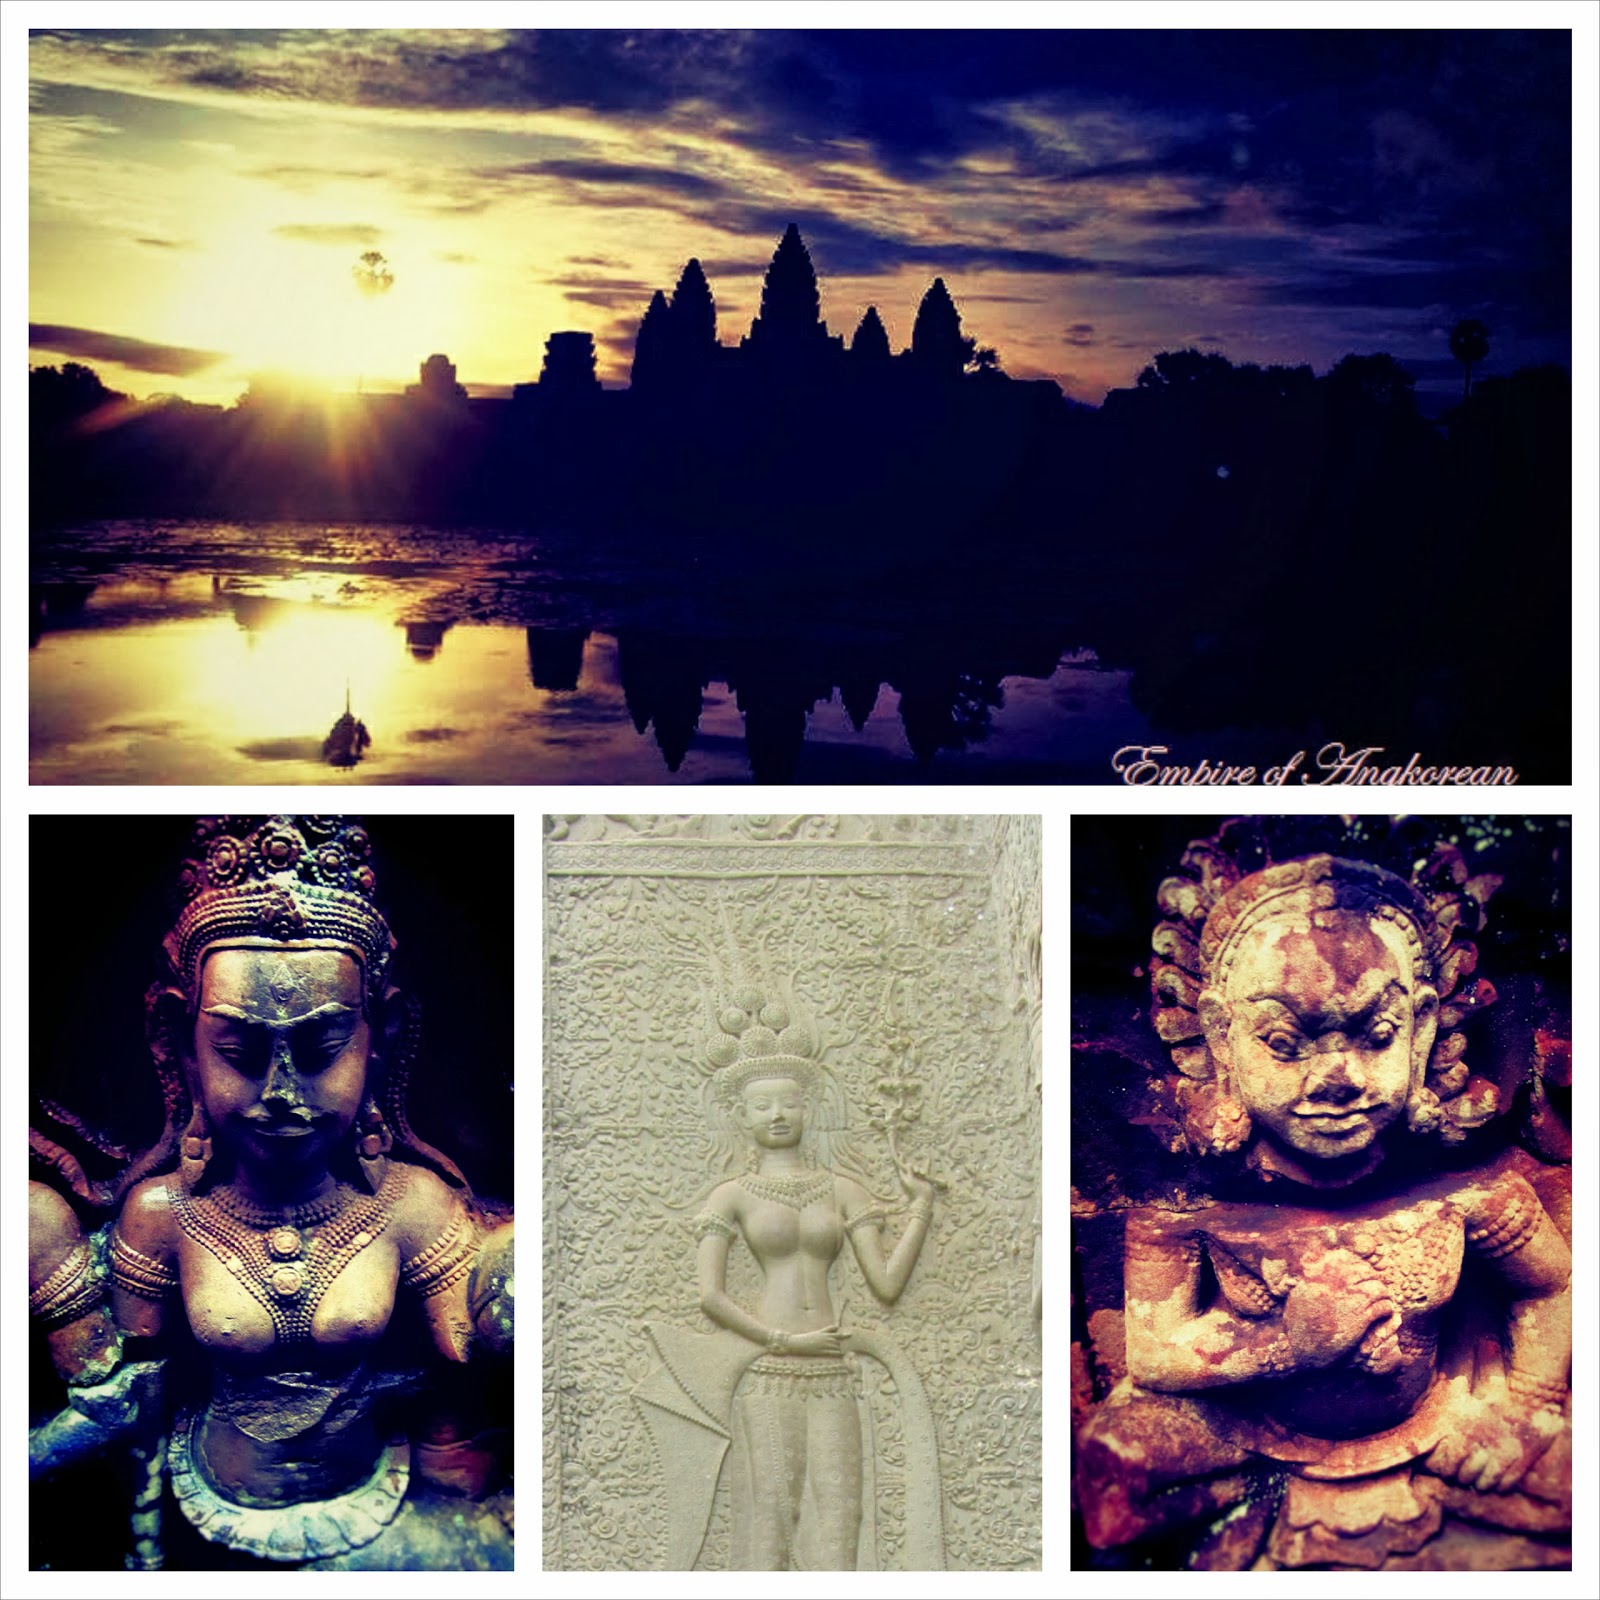 empire knowledge angkor wat one of the seven wonders of the they can enjoy both khmer architectural styles and the sun set view in the evening as well the sun rise view in the early morning